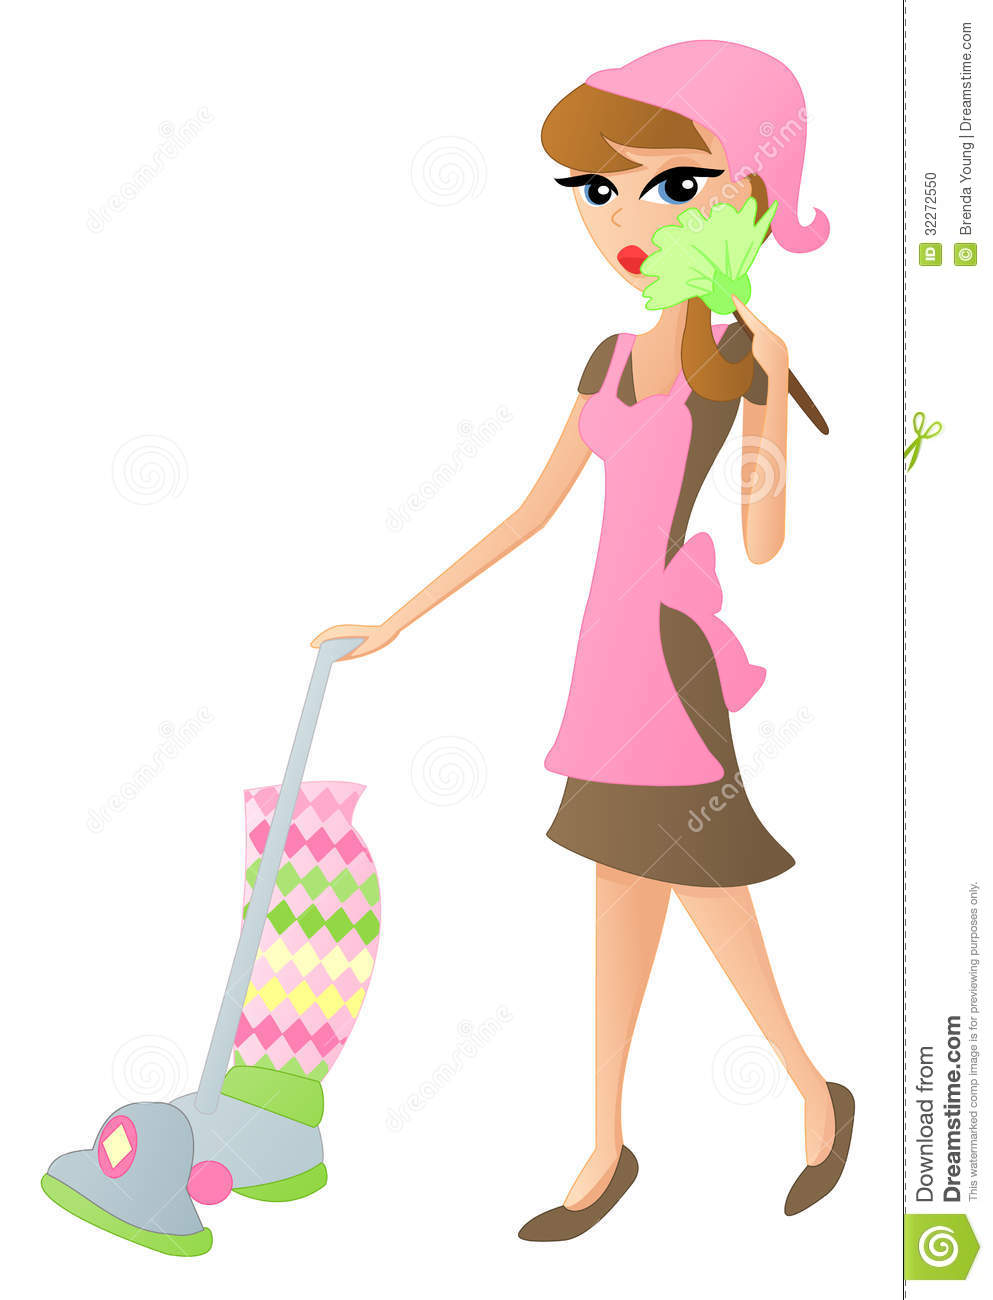 clip art illustrations cleaning - photo #13